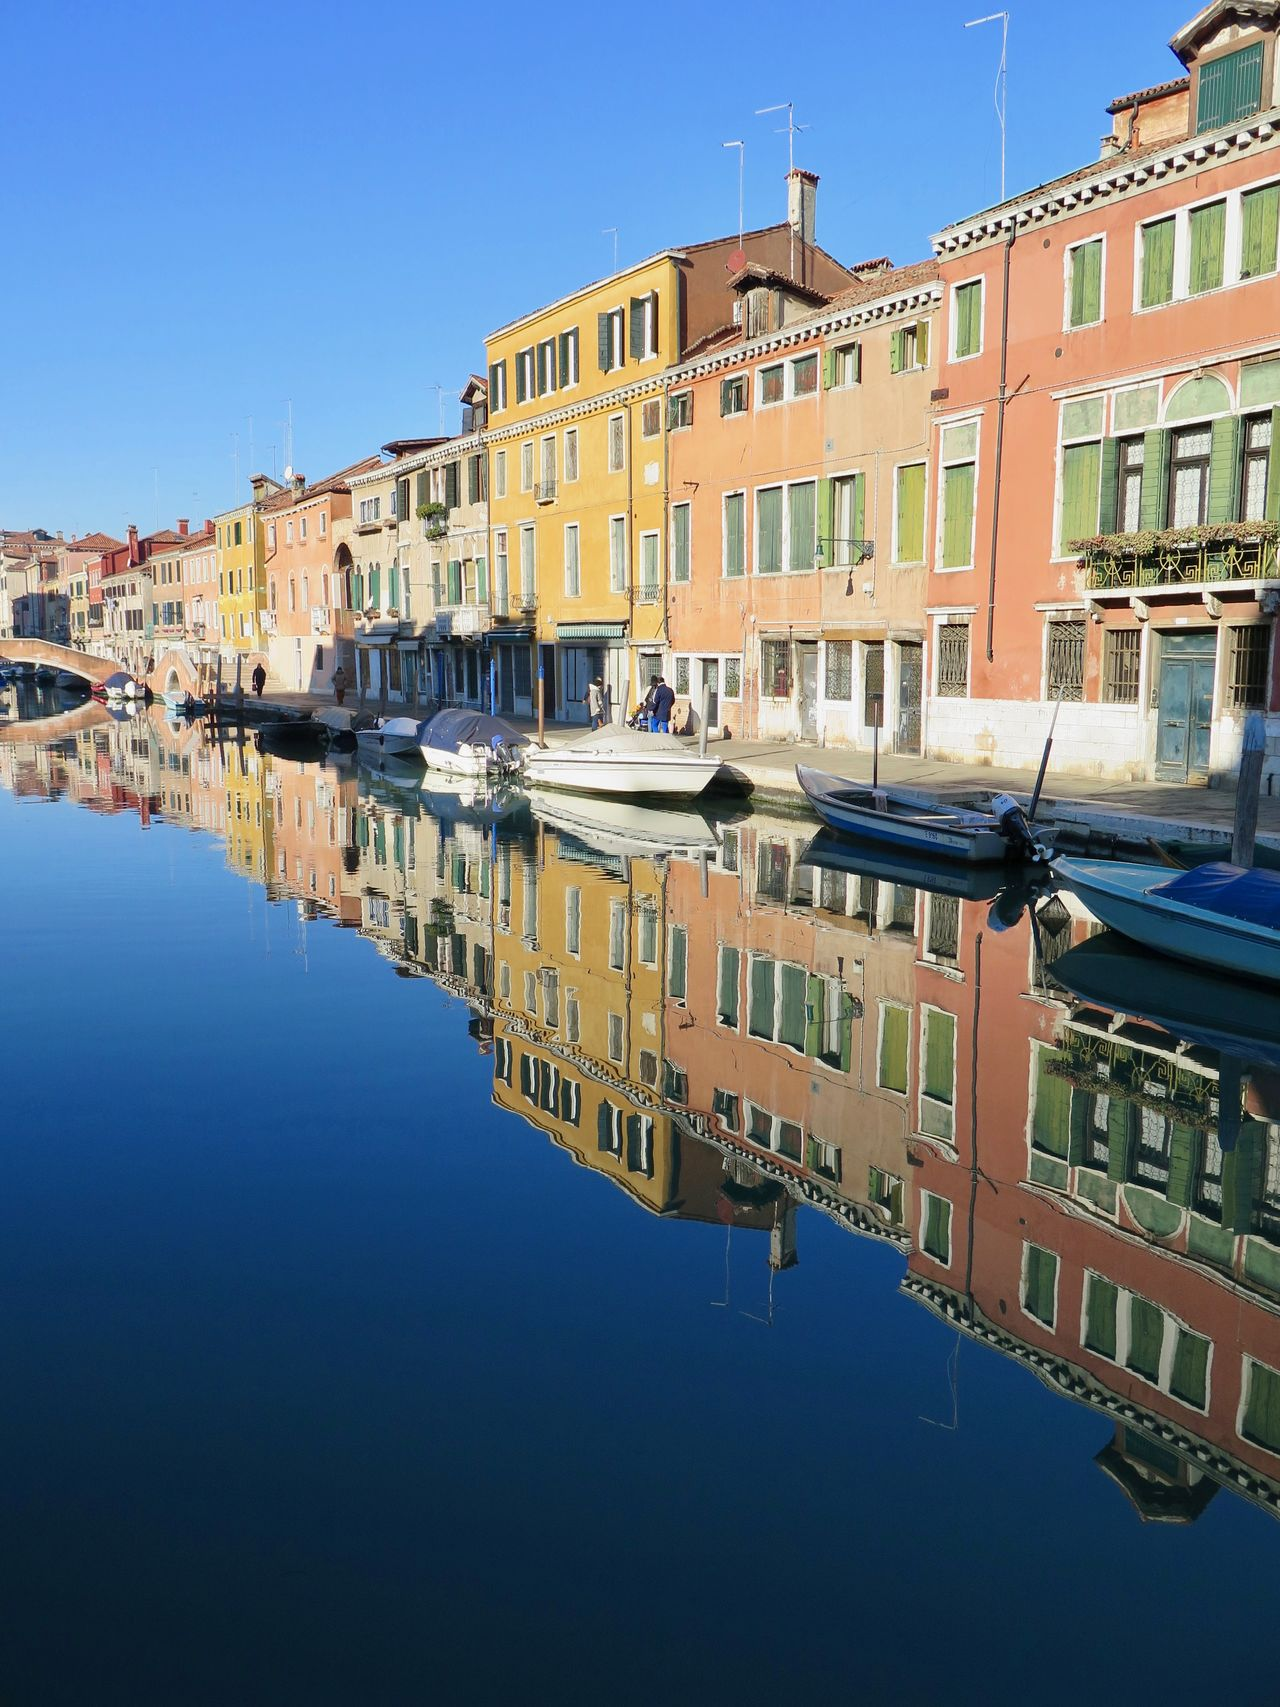 Apartment Architecture Building Exterior Canal City Cityscape Clear Sky Day Gondola - Traditional Boat Italy Holidays Multi Colored Nautical Vessel No People Outdoors Reflection Residential Building Sky Symmetry Tranquil Scene Tranquility Travel Destinations Venezia Venice Water Waterfront